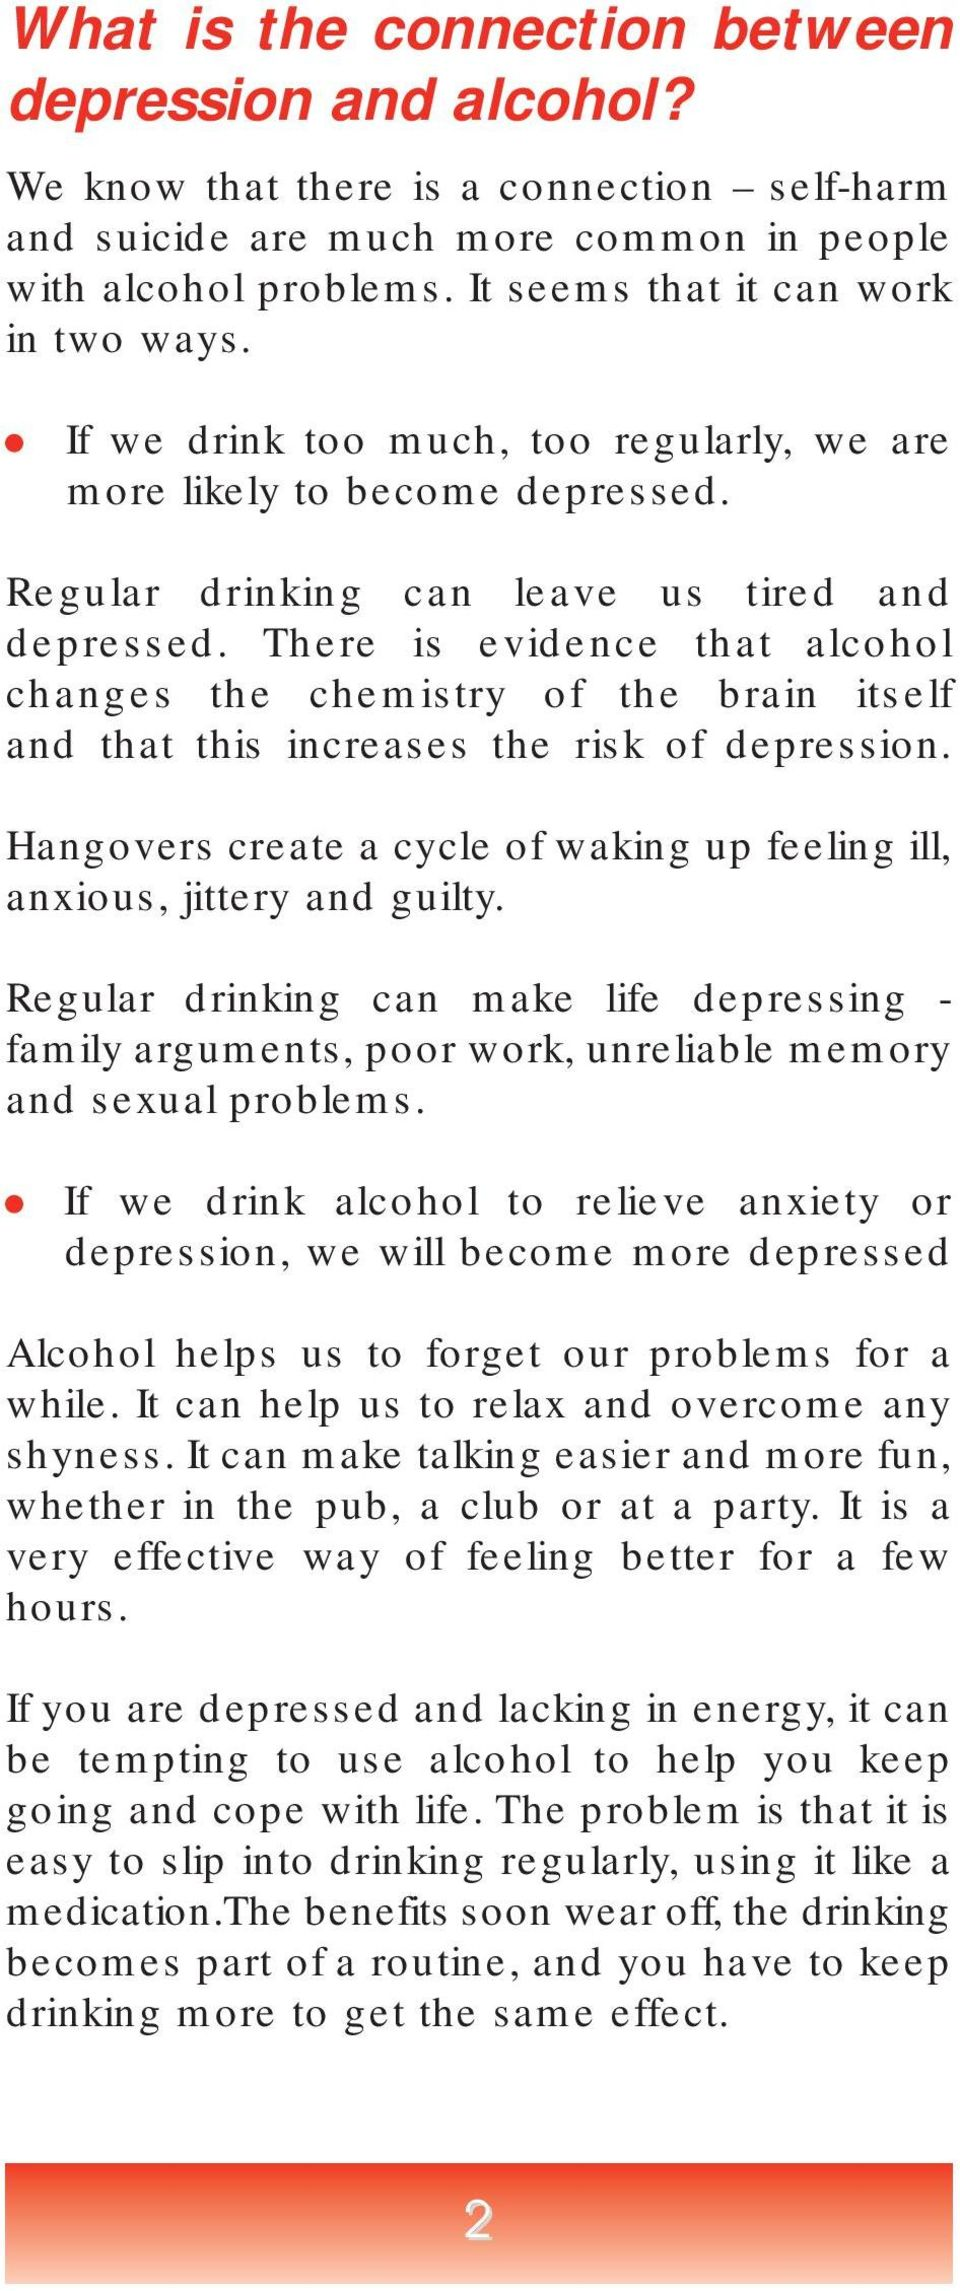 There is evidence that alcohol changes the chemistry of the brain itself and that this increases the risk of depression. Hangovers create a cycle of waking up feeling ill, anxious, jittery and guilty.